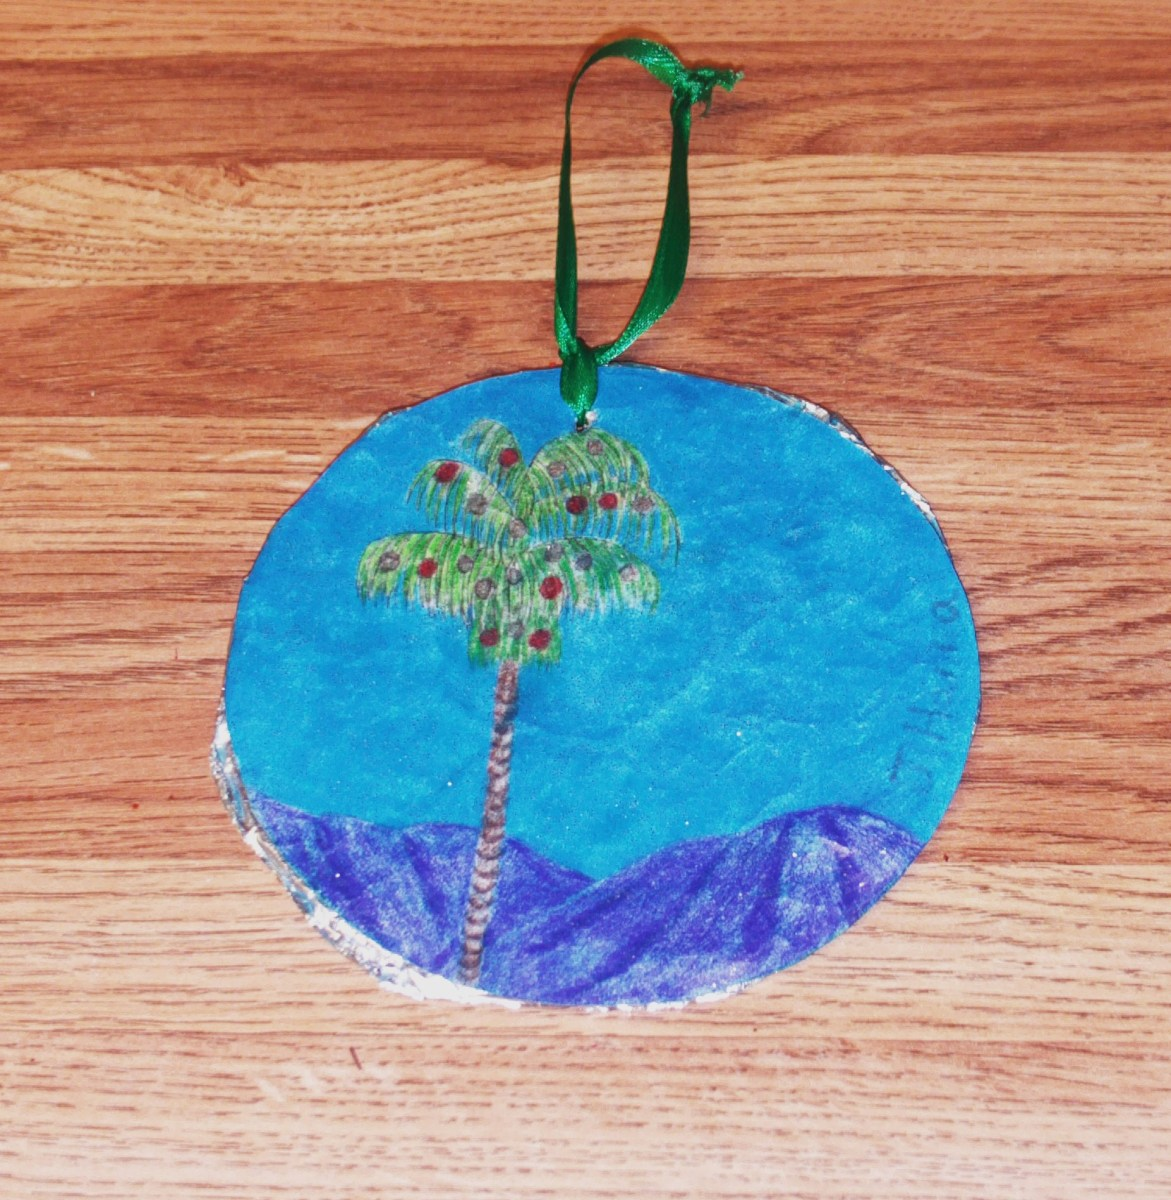 A handmade palm tree ornament that pays tribute to Southern California.